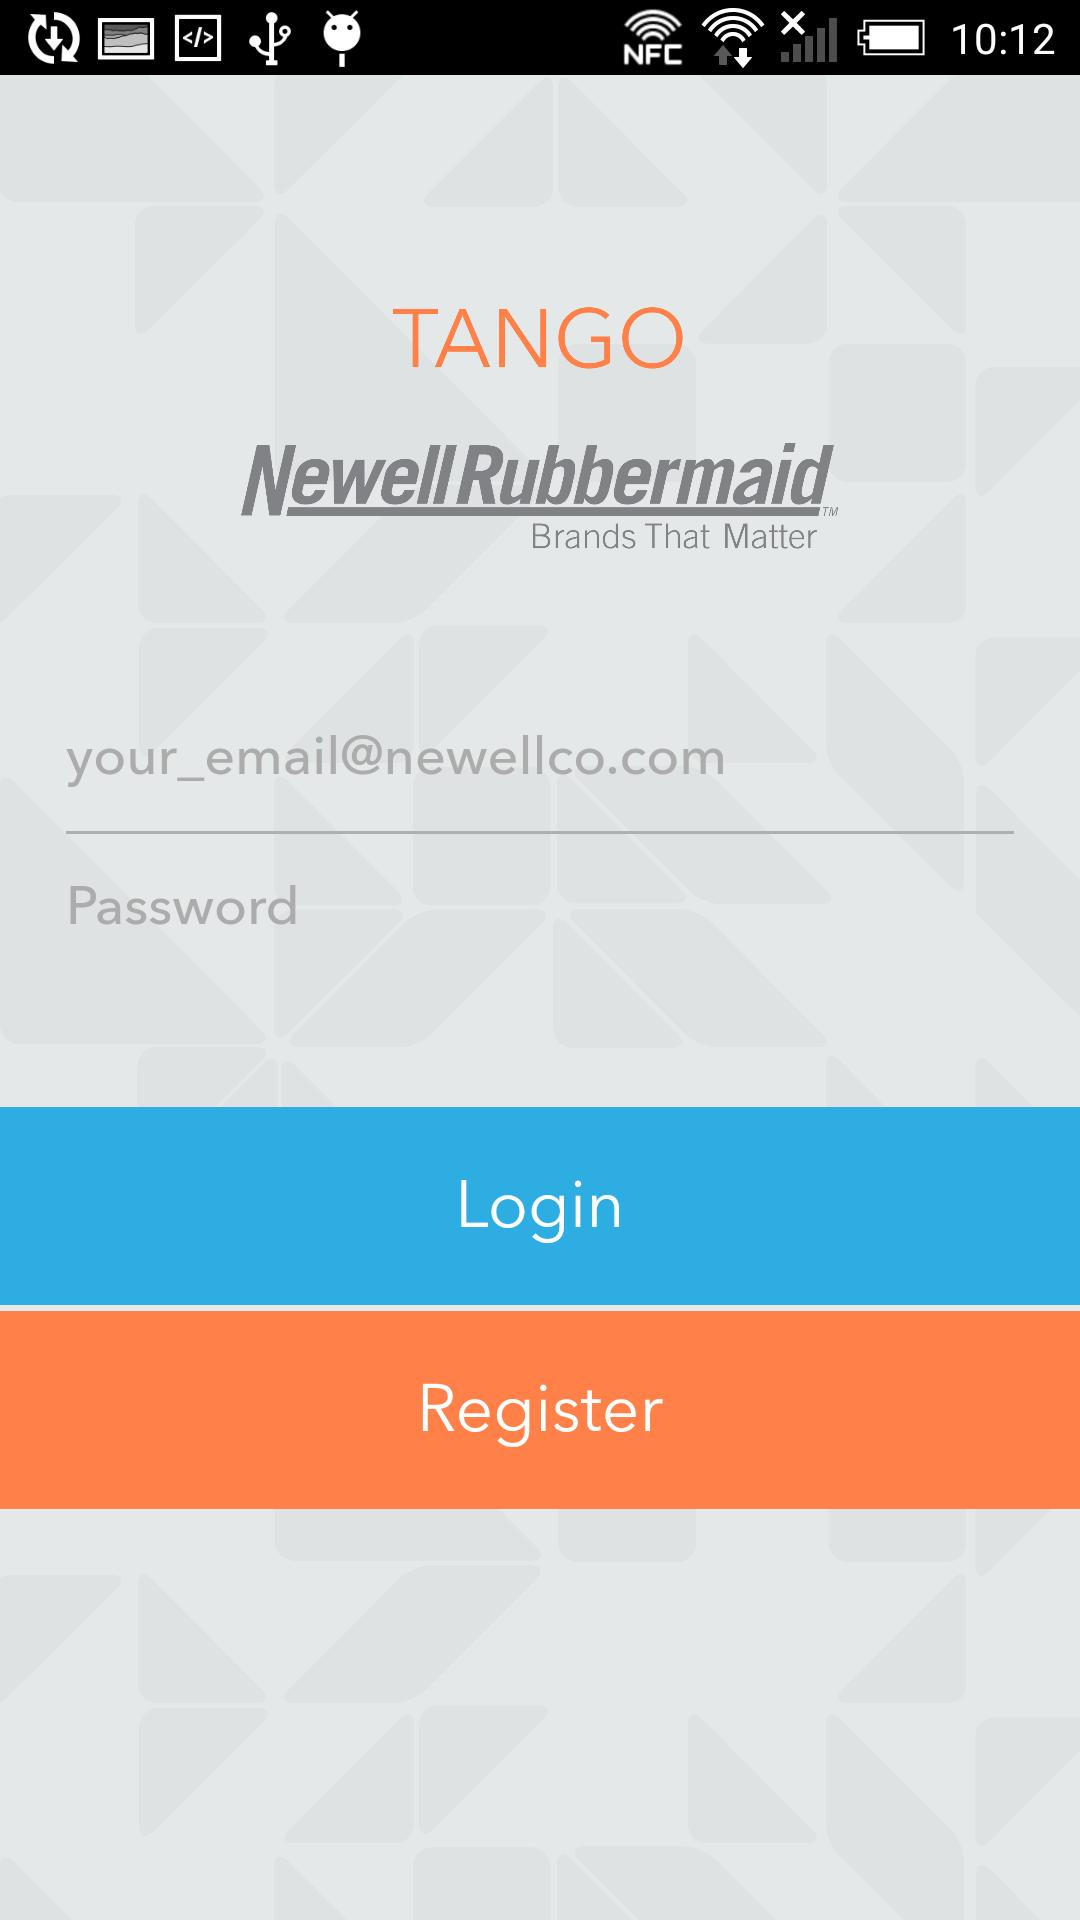 Newell Rubbermaid Tango for Android - APK Download